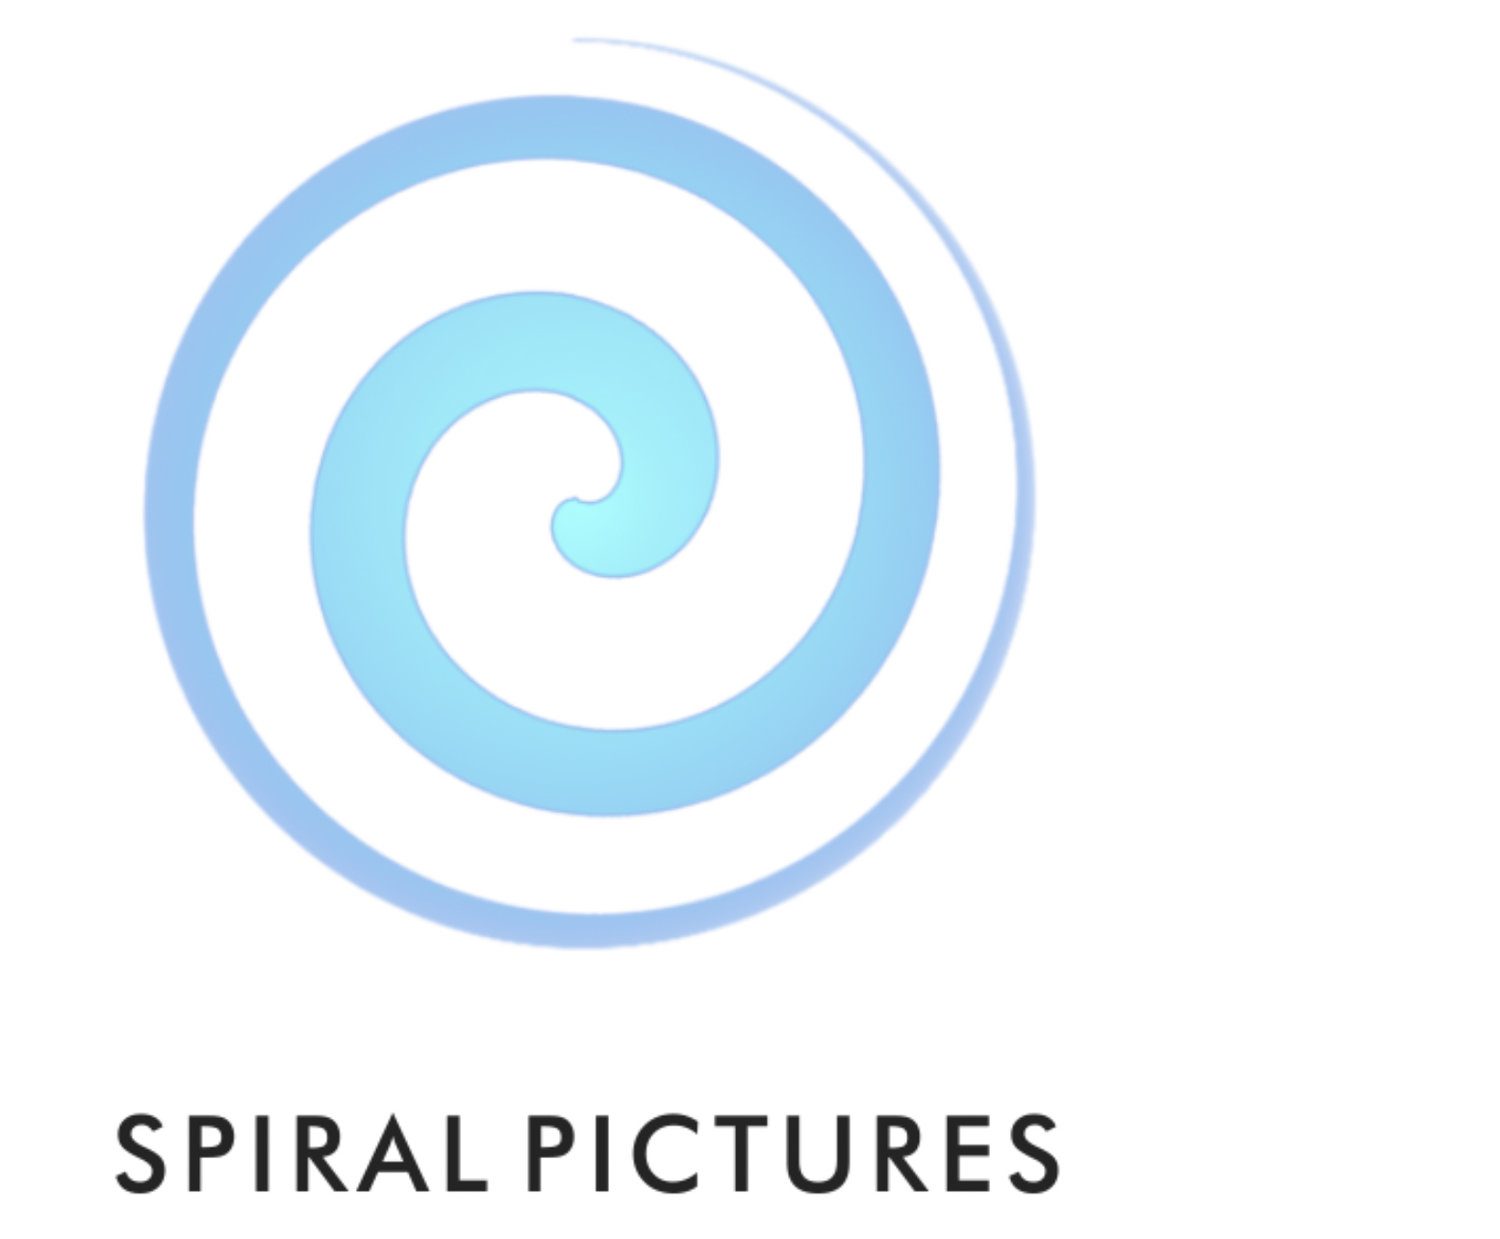 SPIRAL PICTURES